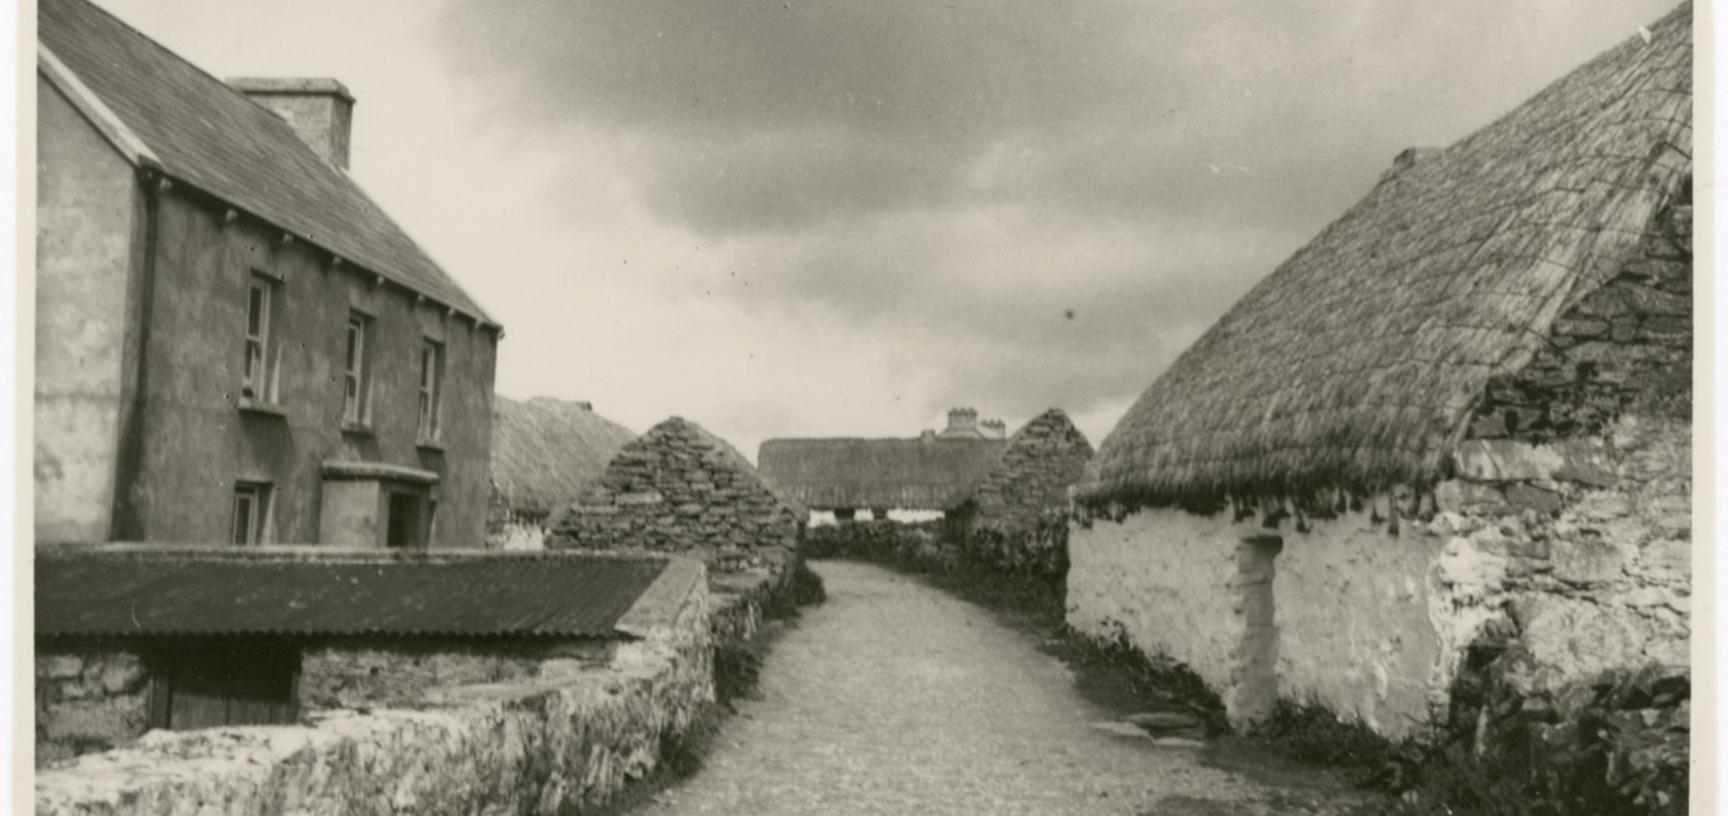 'Thatched cottages on Aran Isles' (typed caption). Photograph by Ingegärd Vallin. Aran Islands, County Galway, Ireland. 1949.